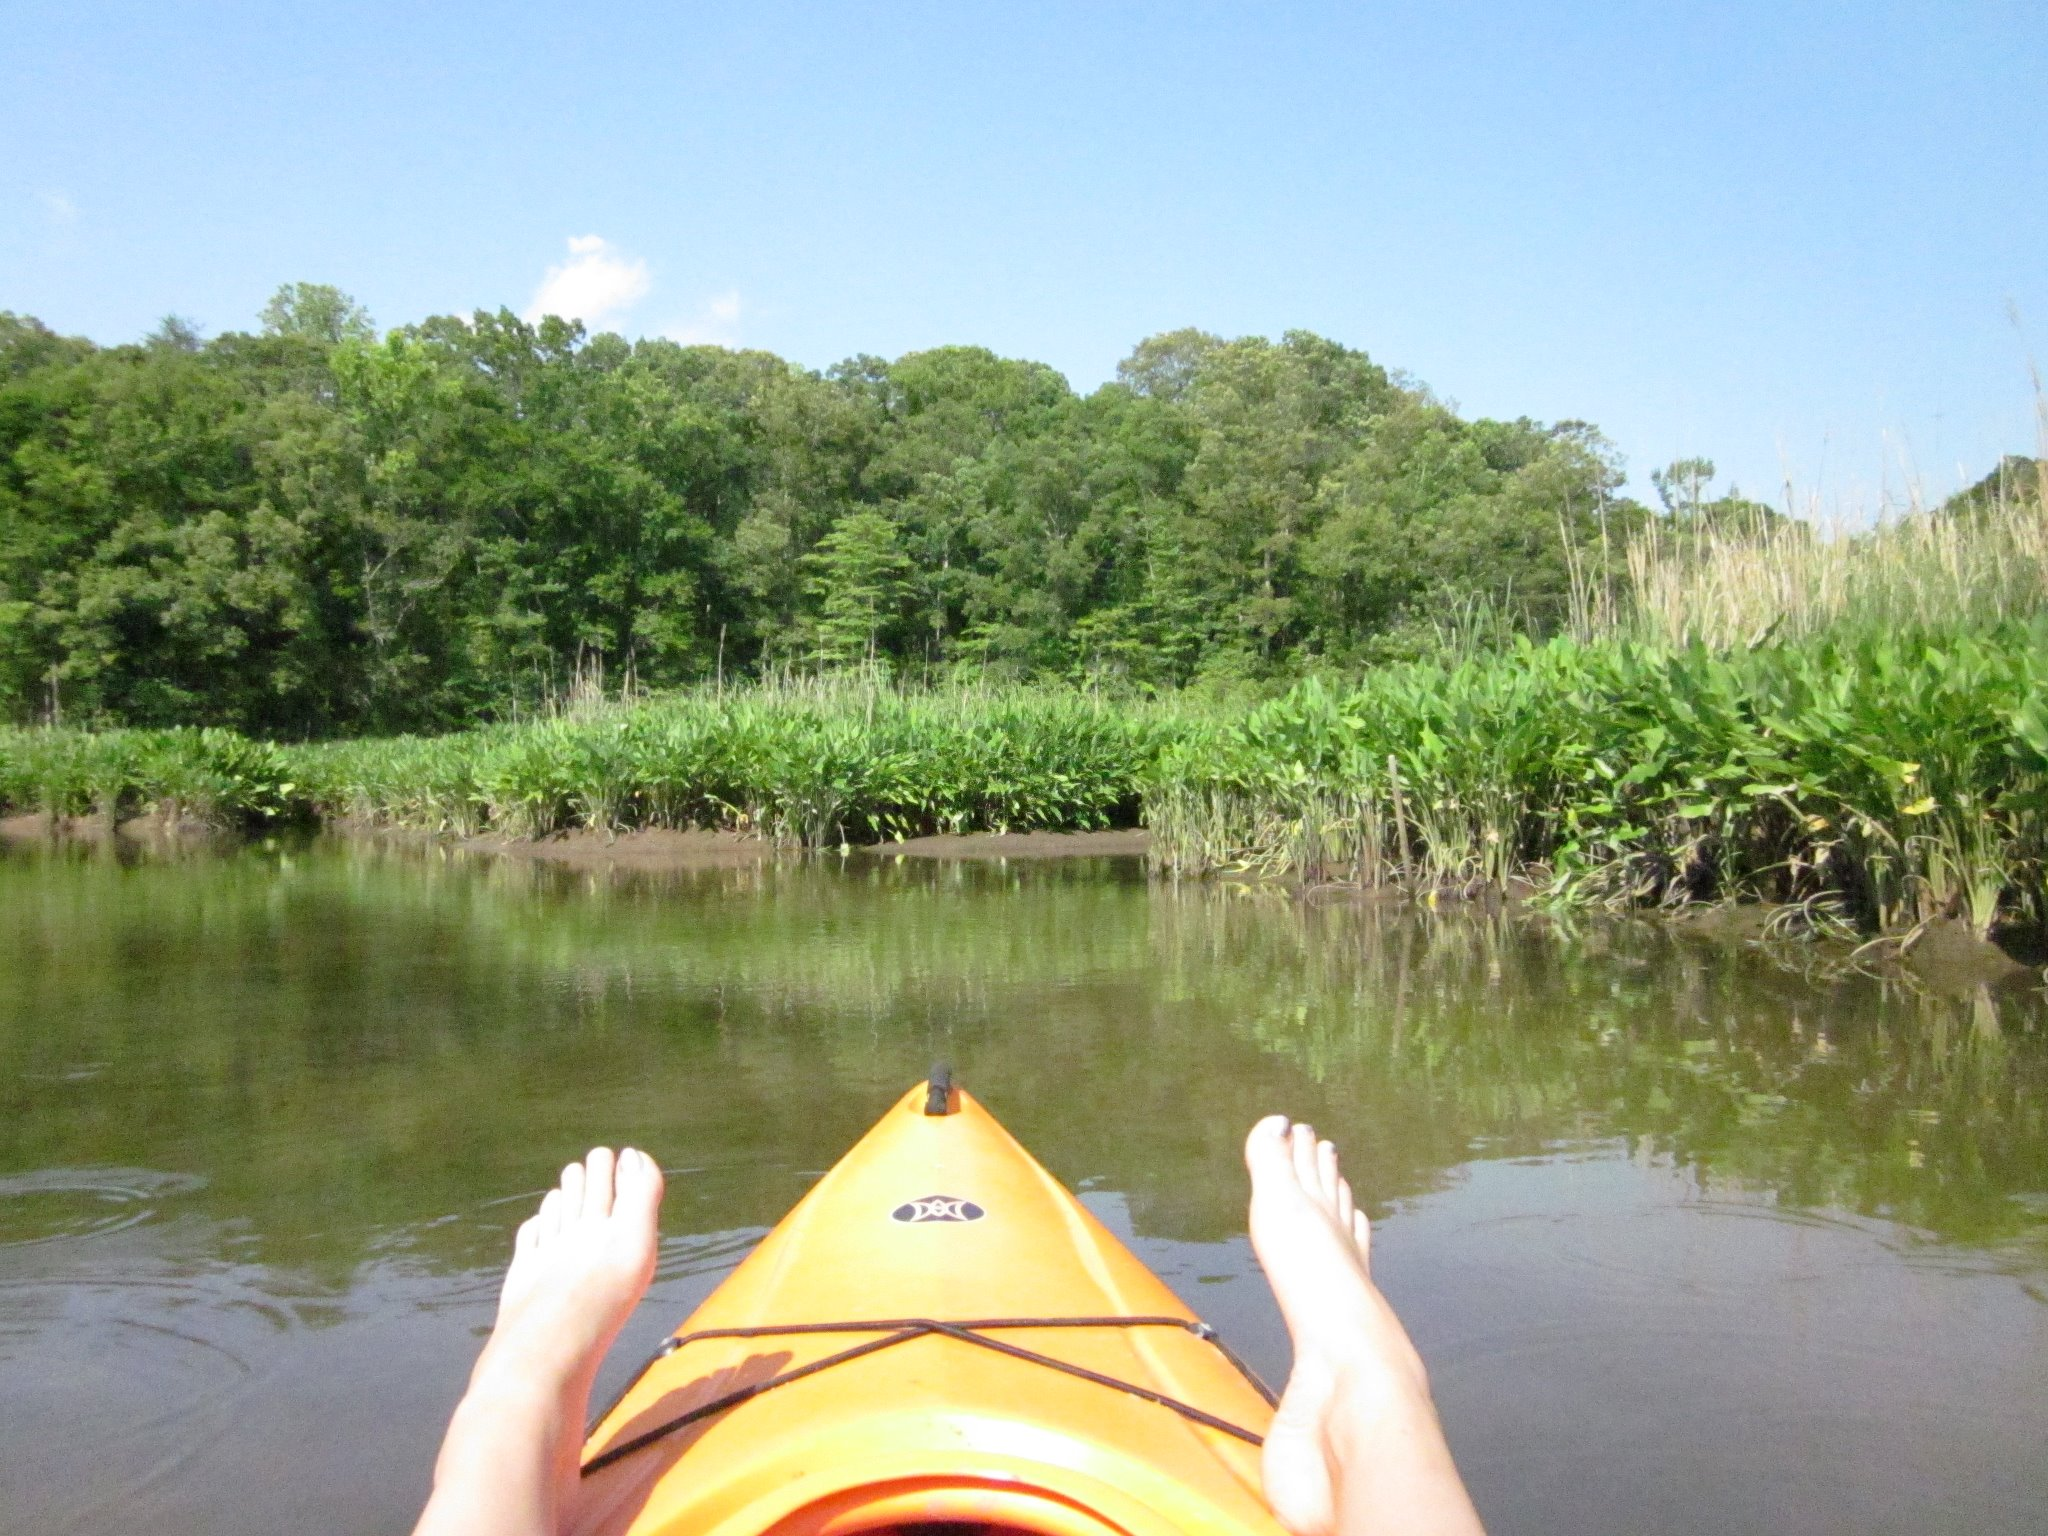 Kayak and Canoe Kayaking the Patuxent River, MD